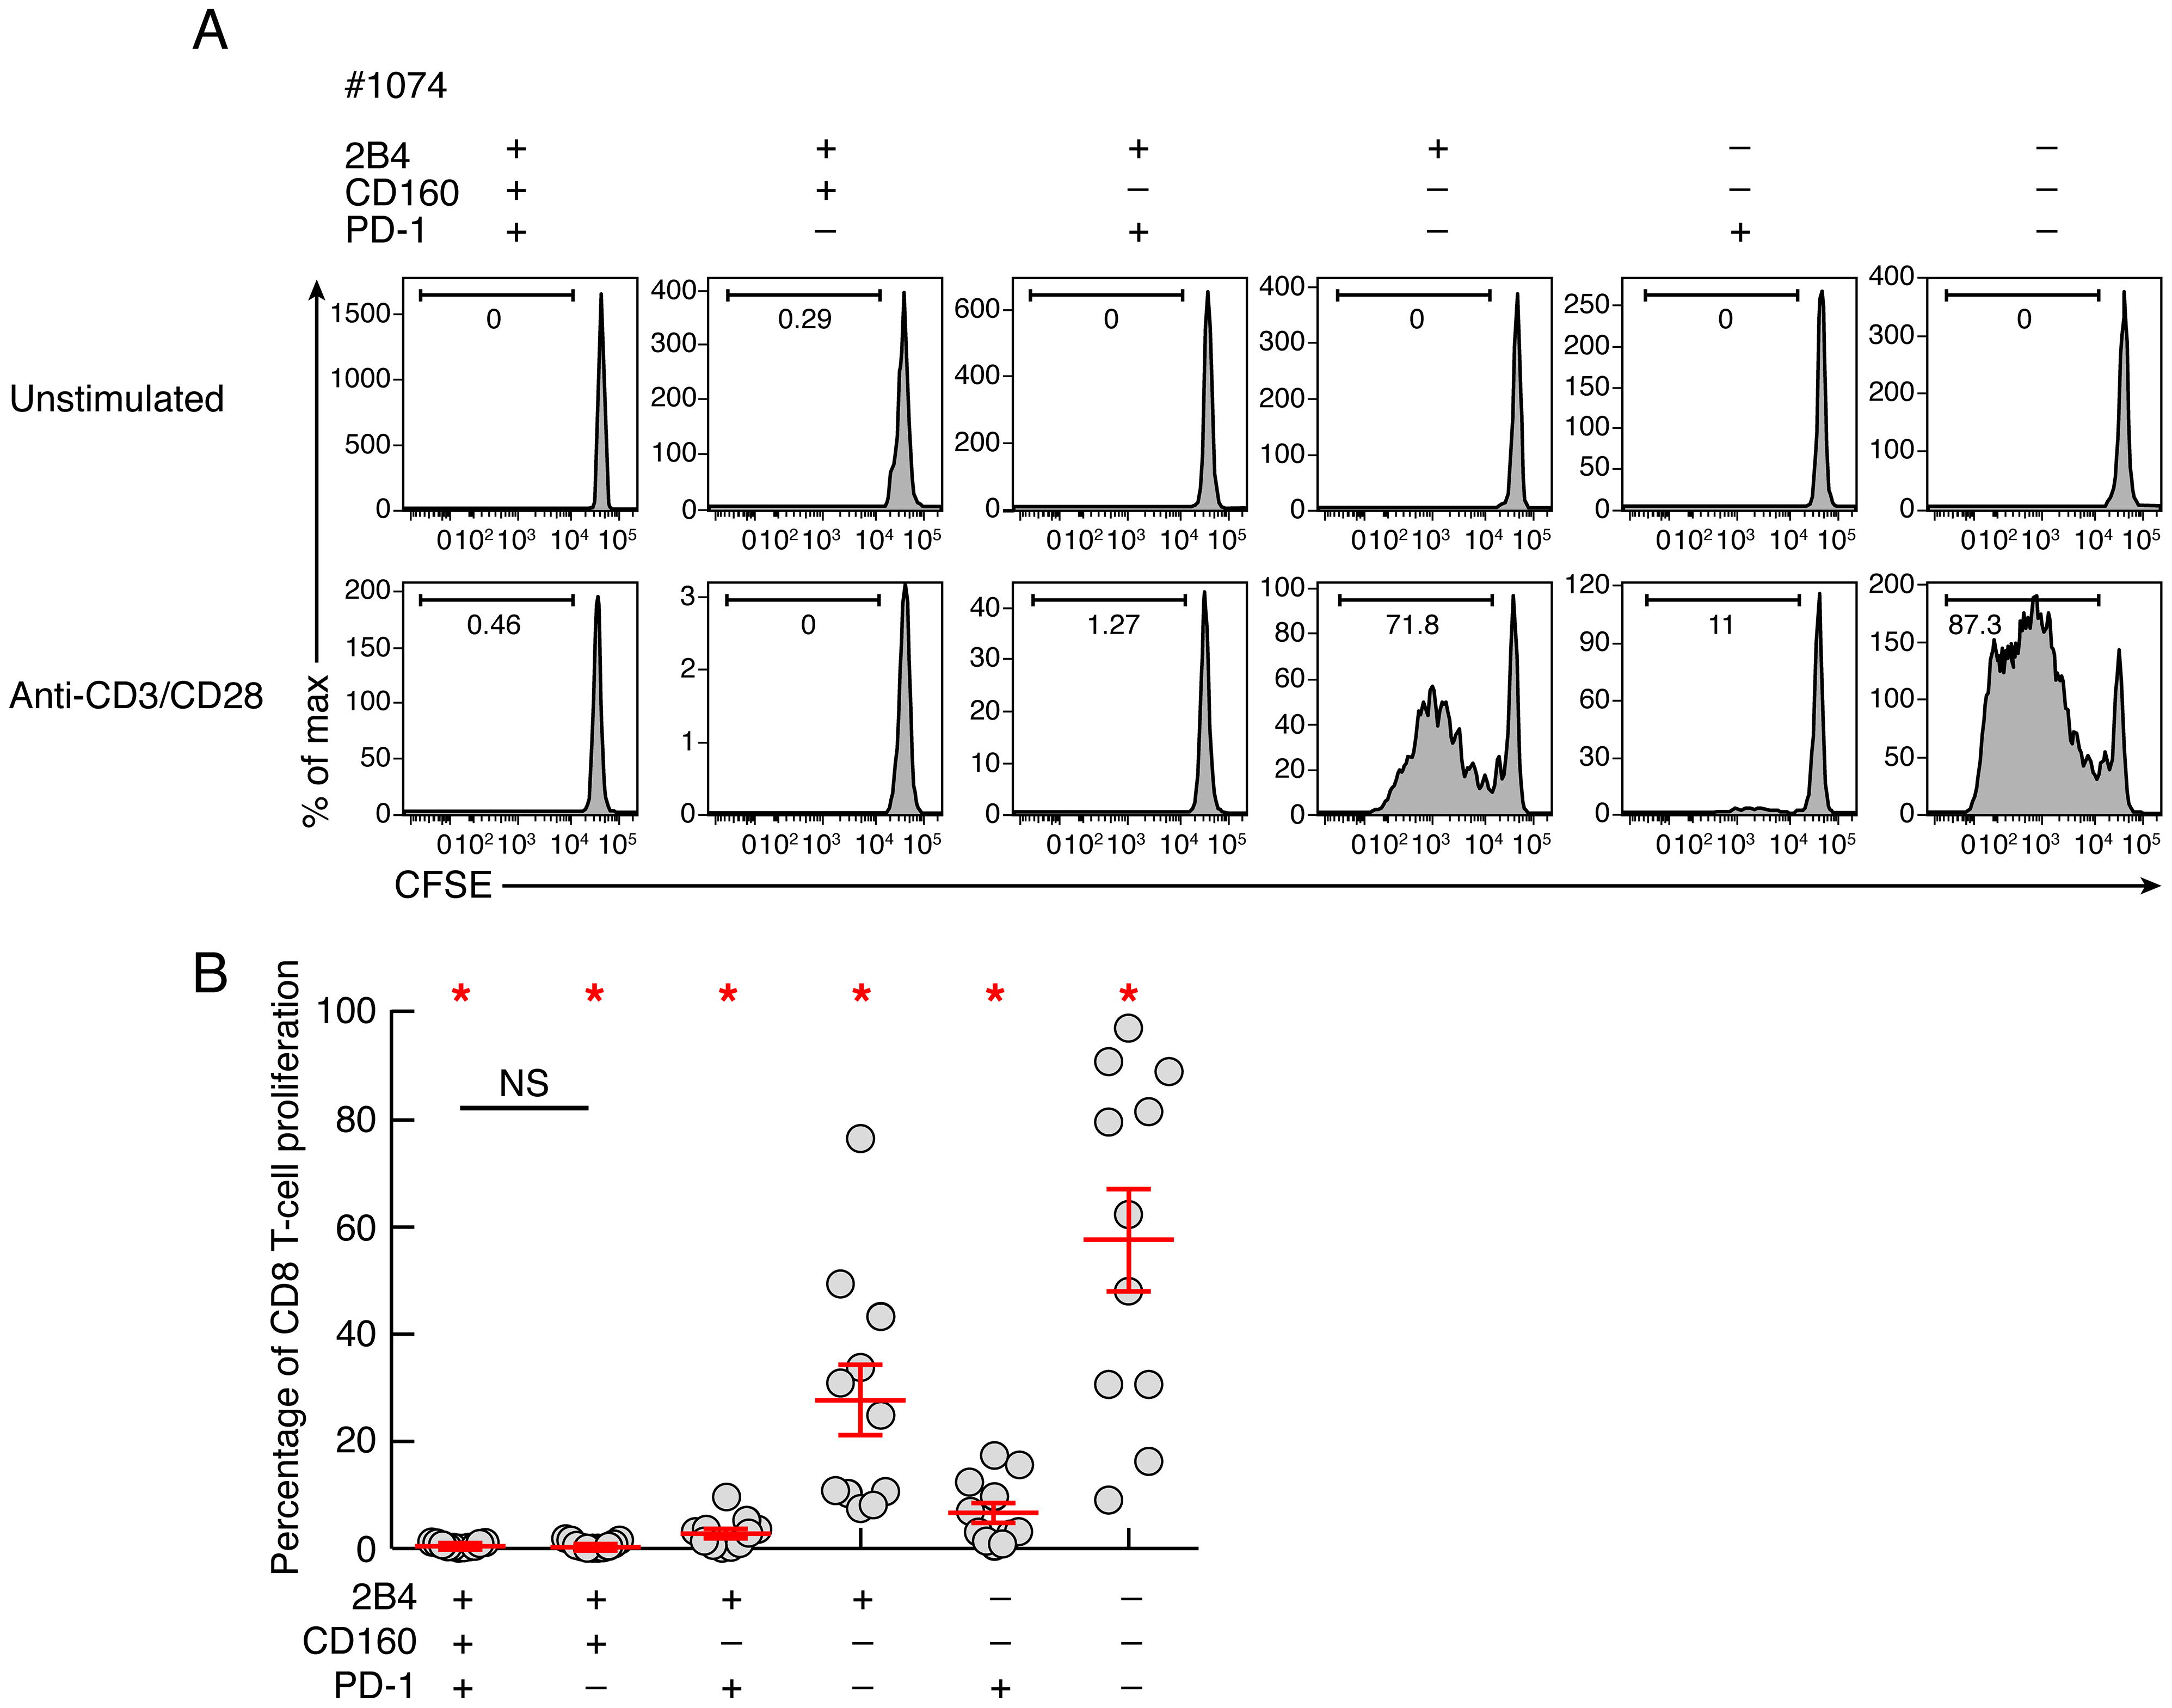 Intrinsic proliferation capacity of sorted CD8 T-cell populations expressing the different combinations of 2B4, CD160 and PD-1.